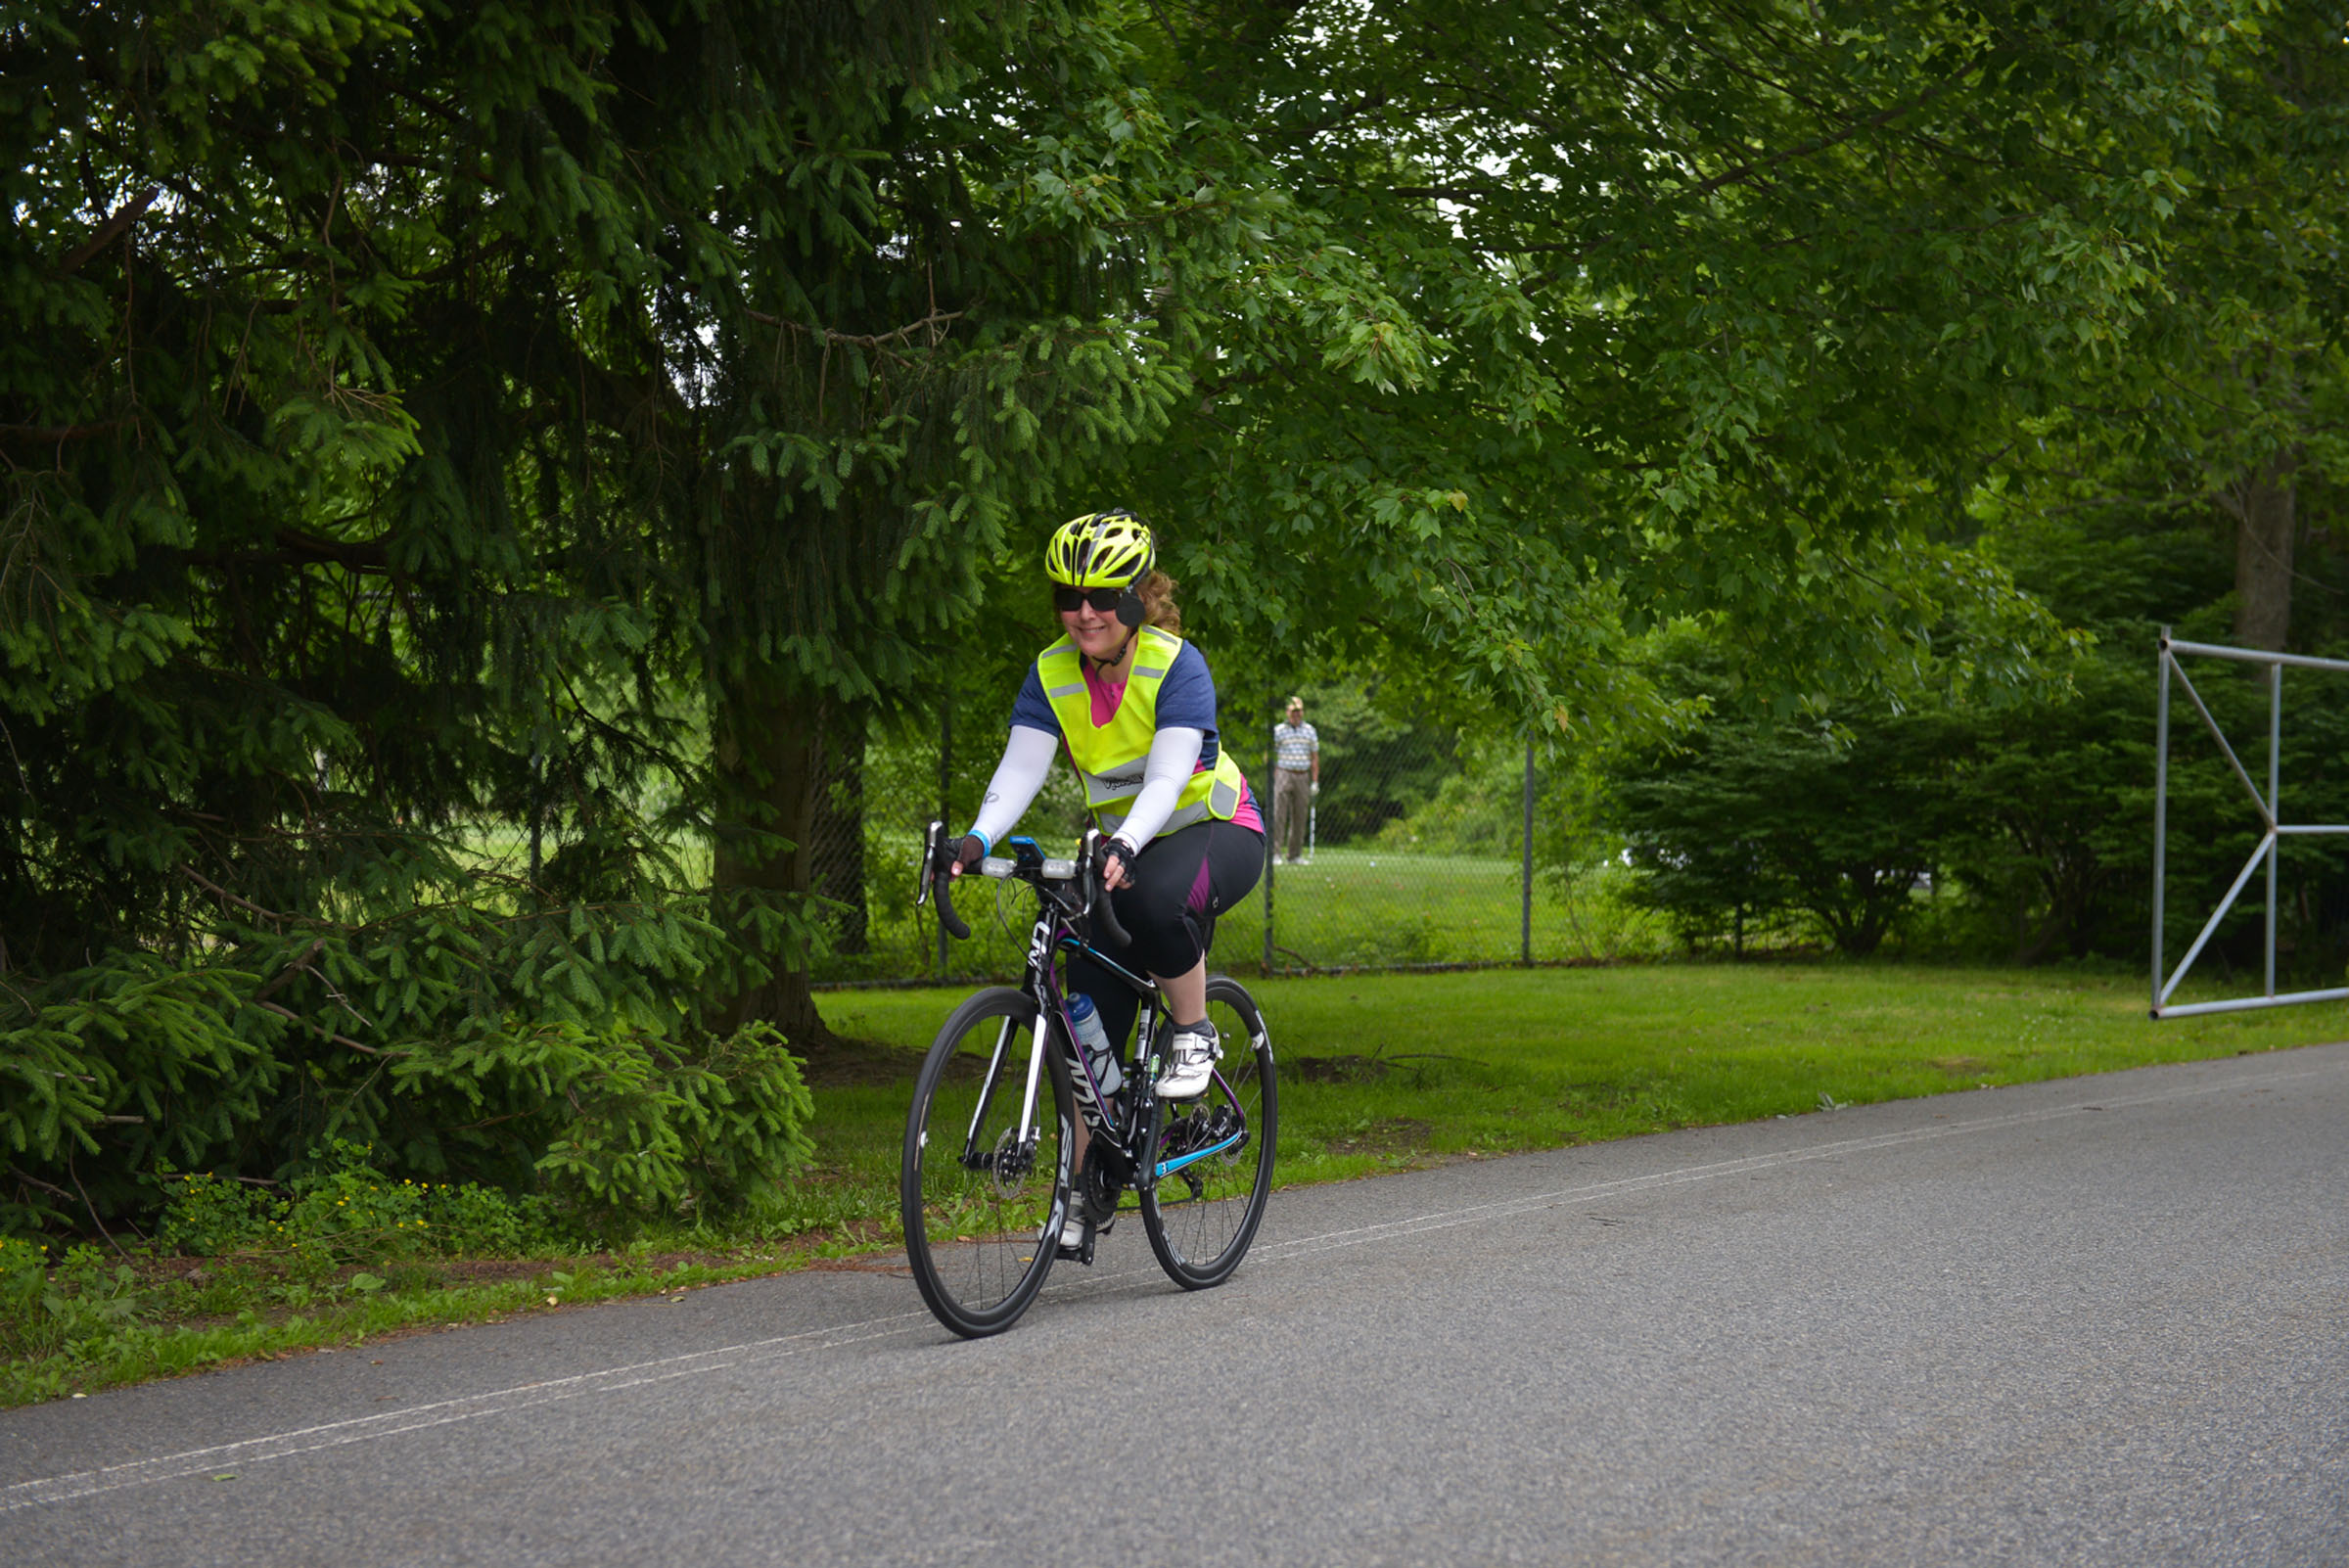 2017-06-04 GTD4A Charity Bike Ride - BCC - Paramus NJ-2267.jpg